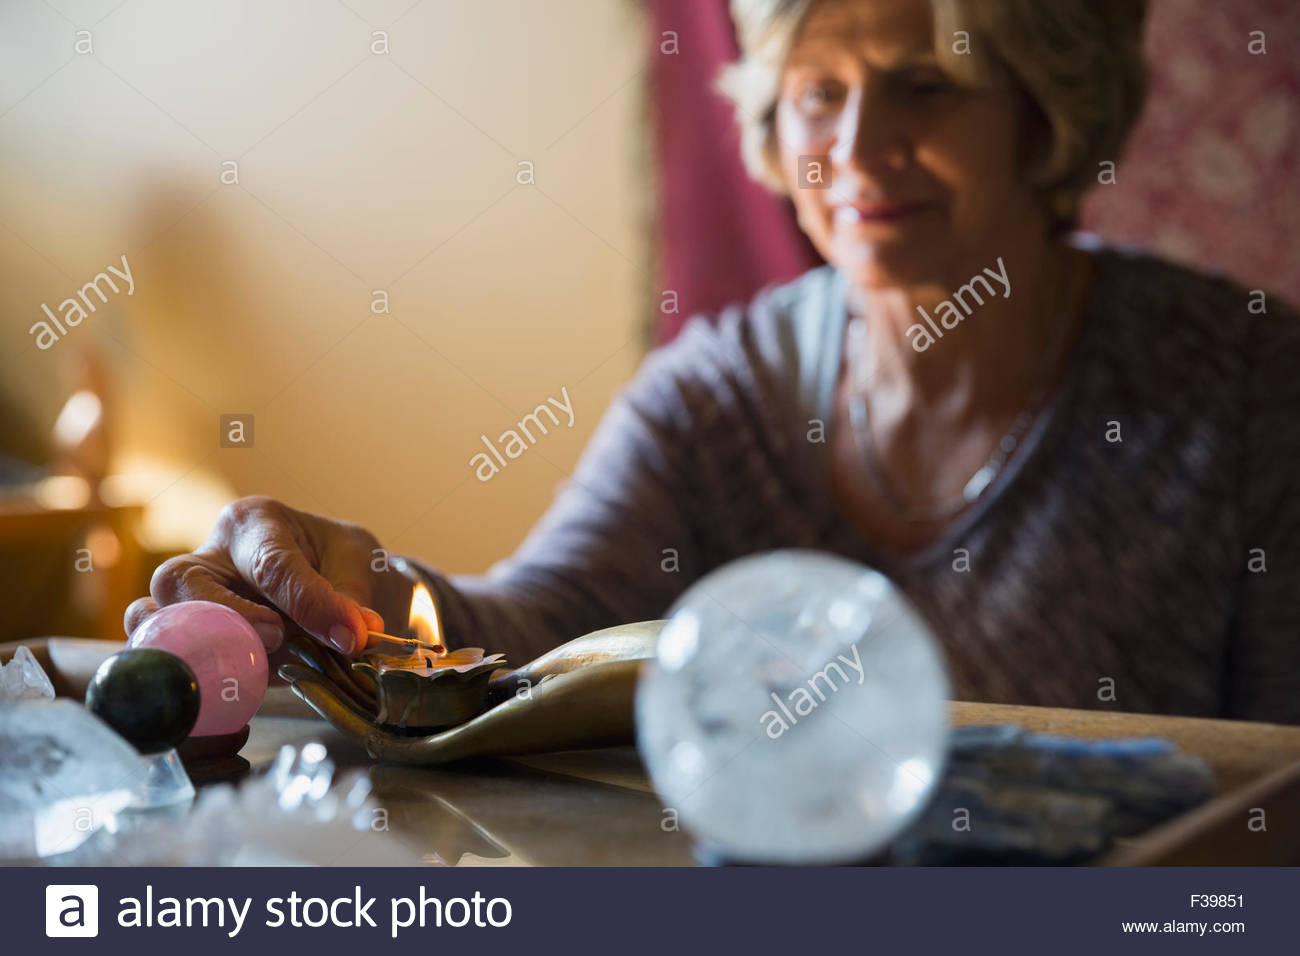 Senior woman lighting candle for meditation - Stock Image